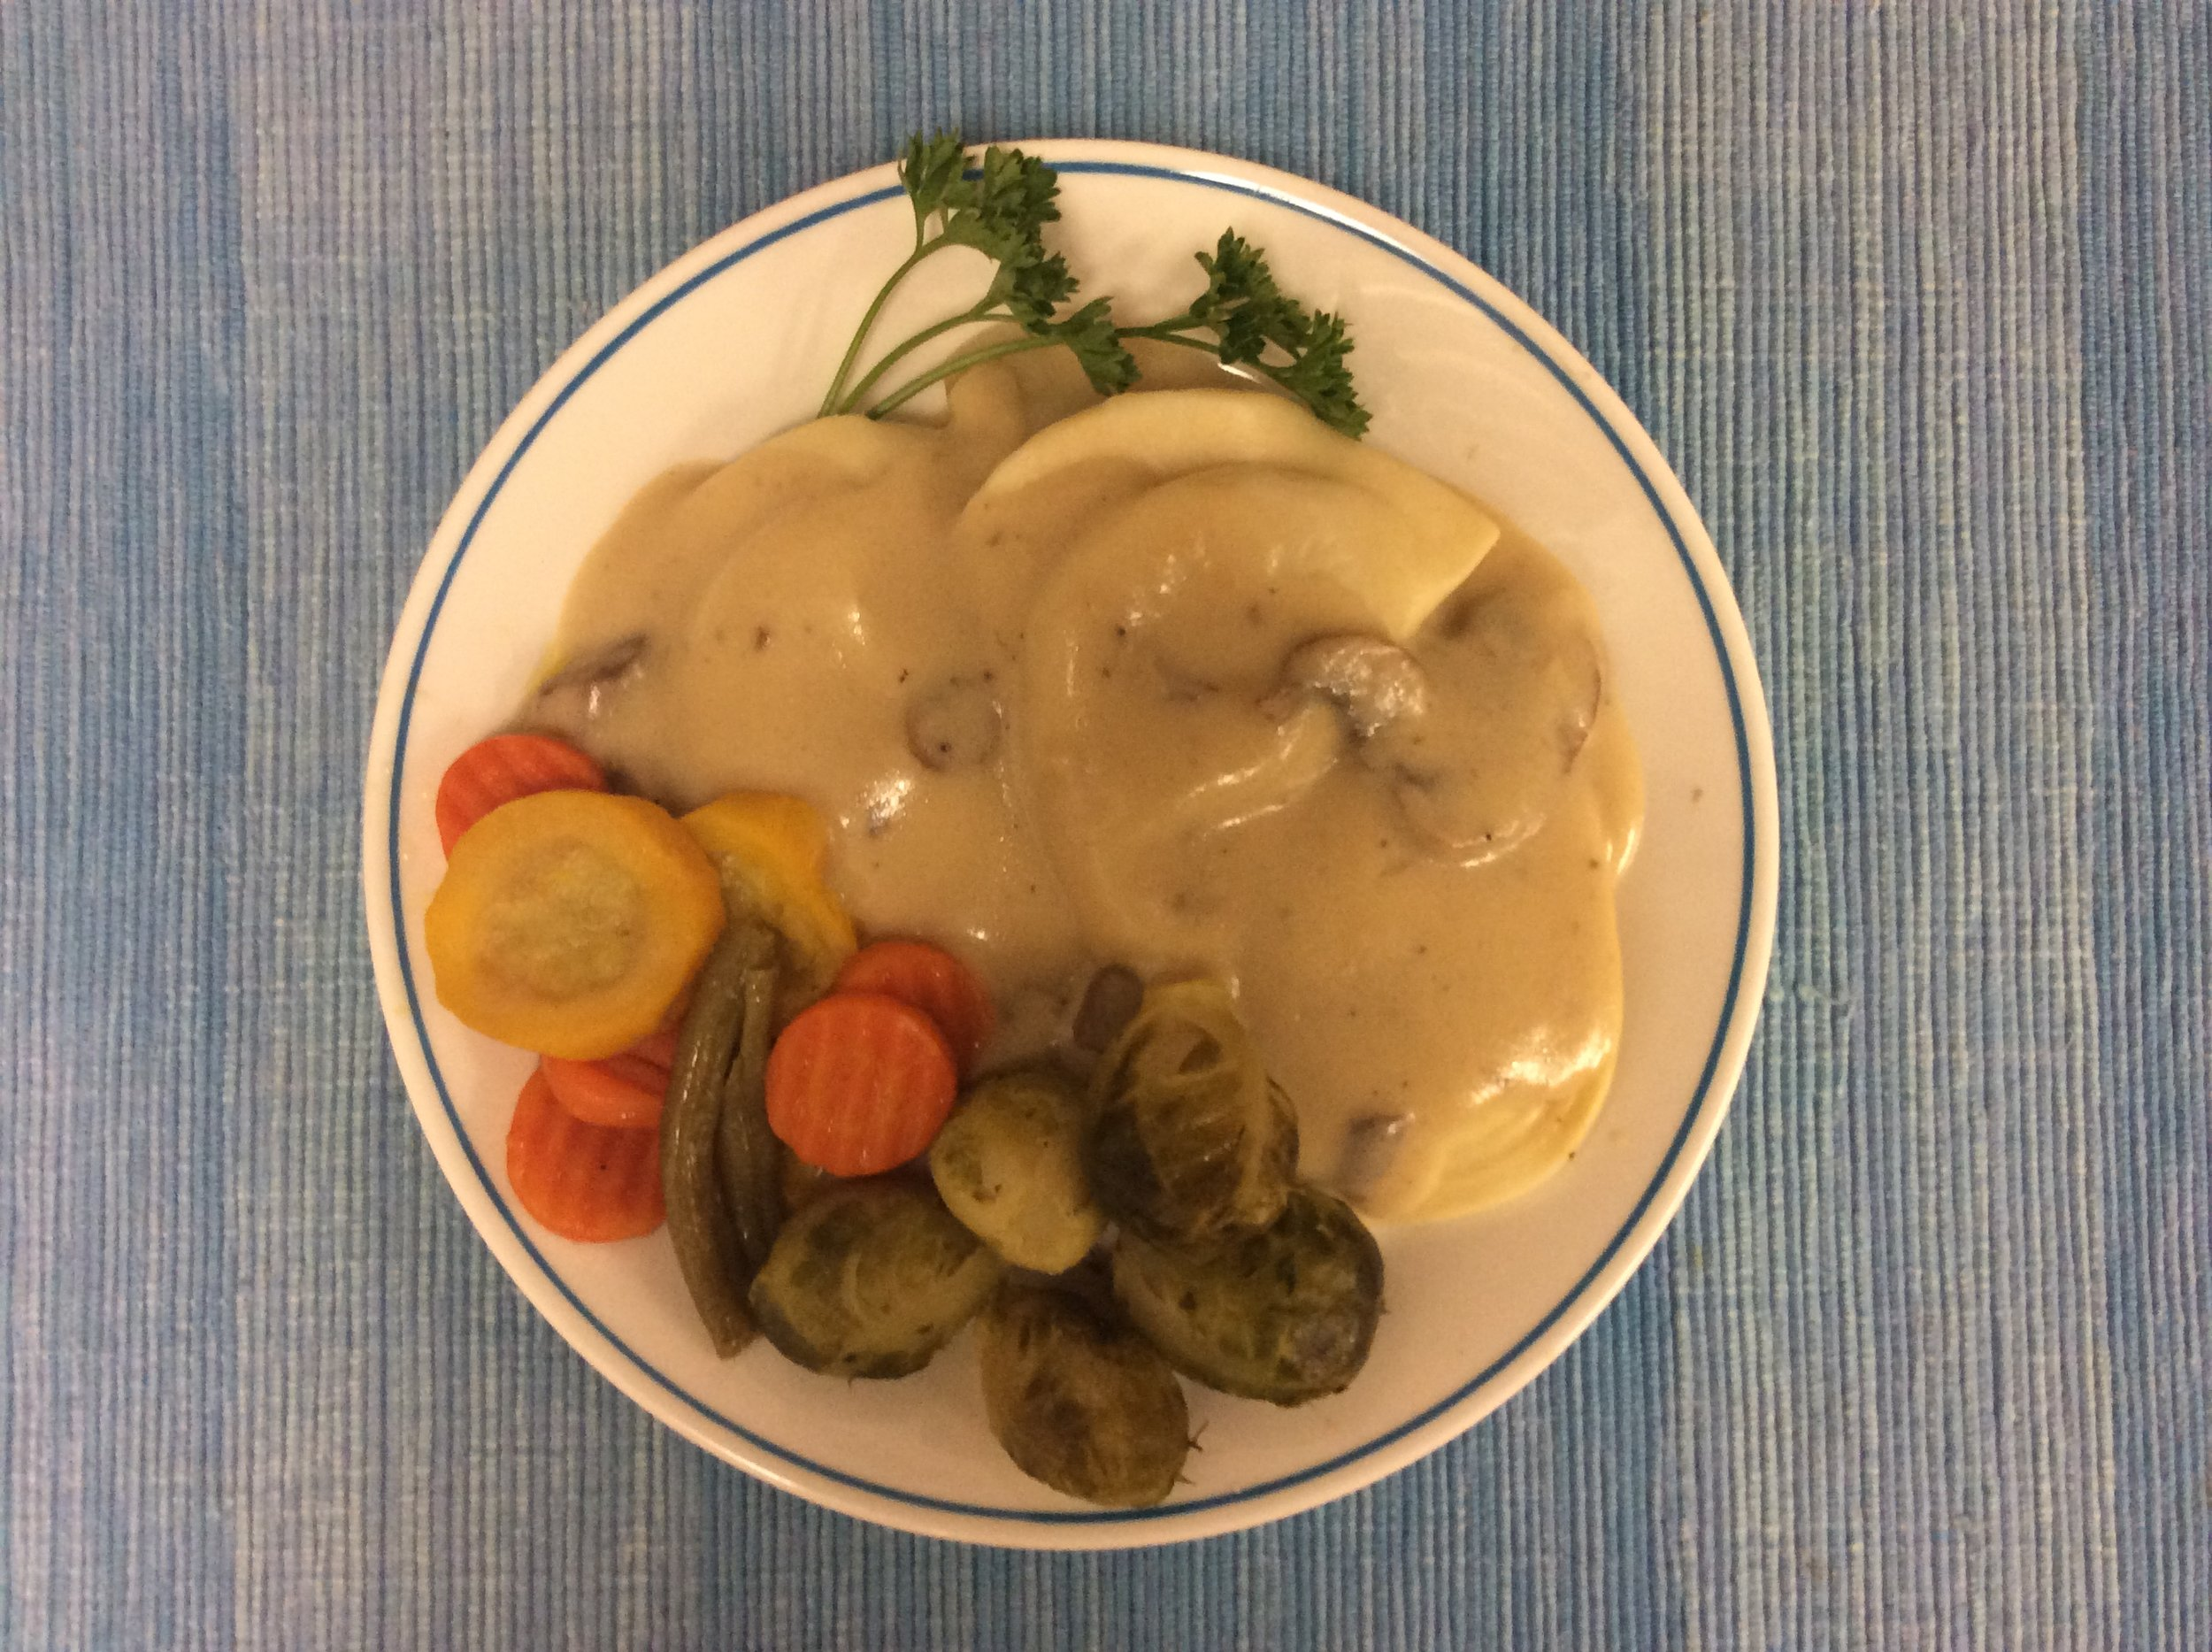 Perogies with golden gravy, capri vegetables, and lemony brussel sprouts